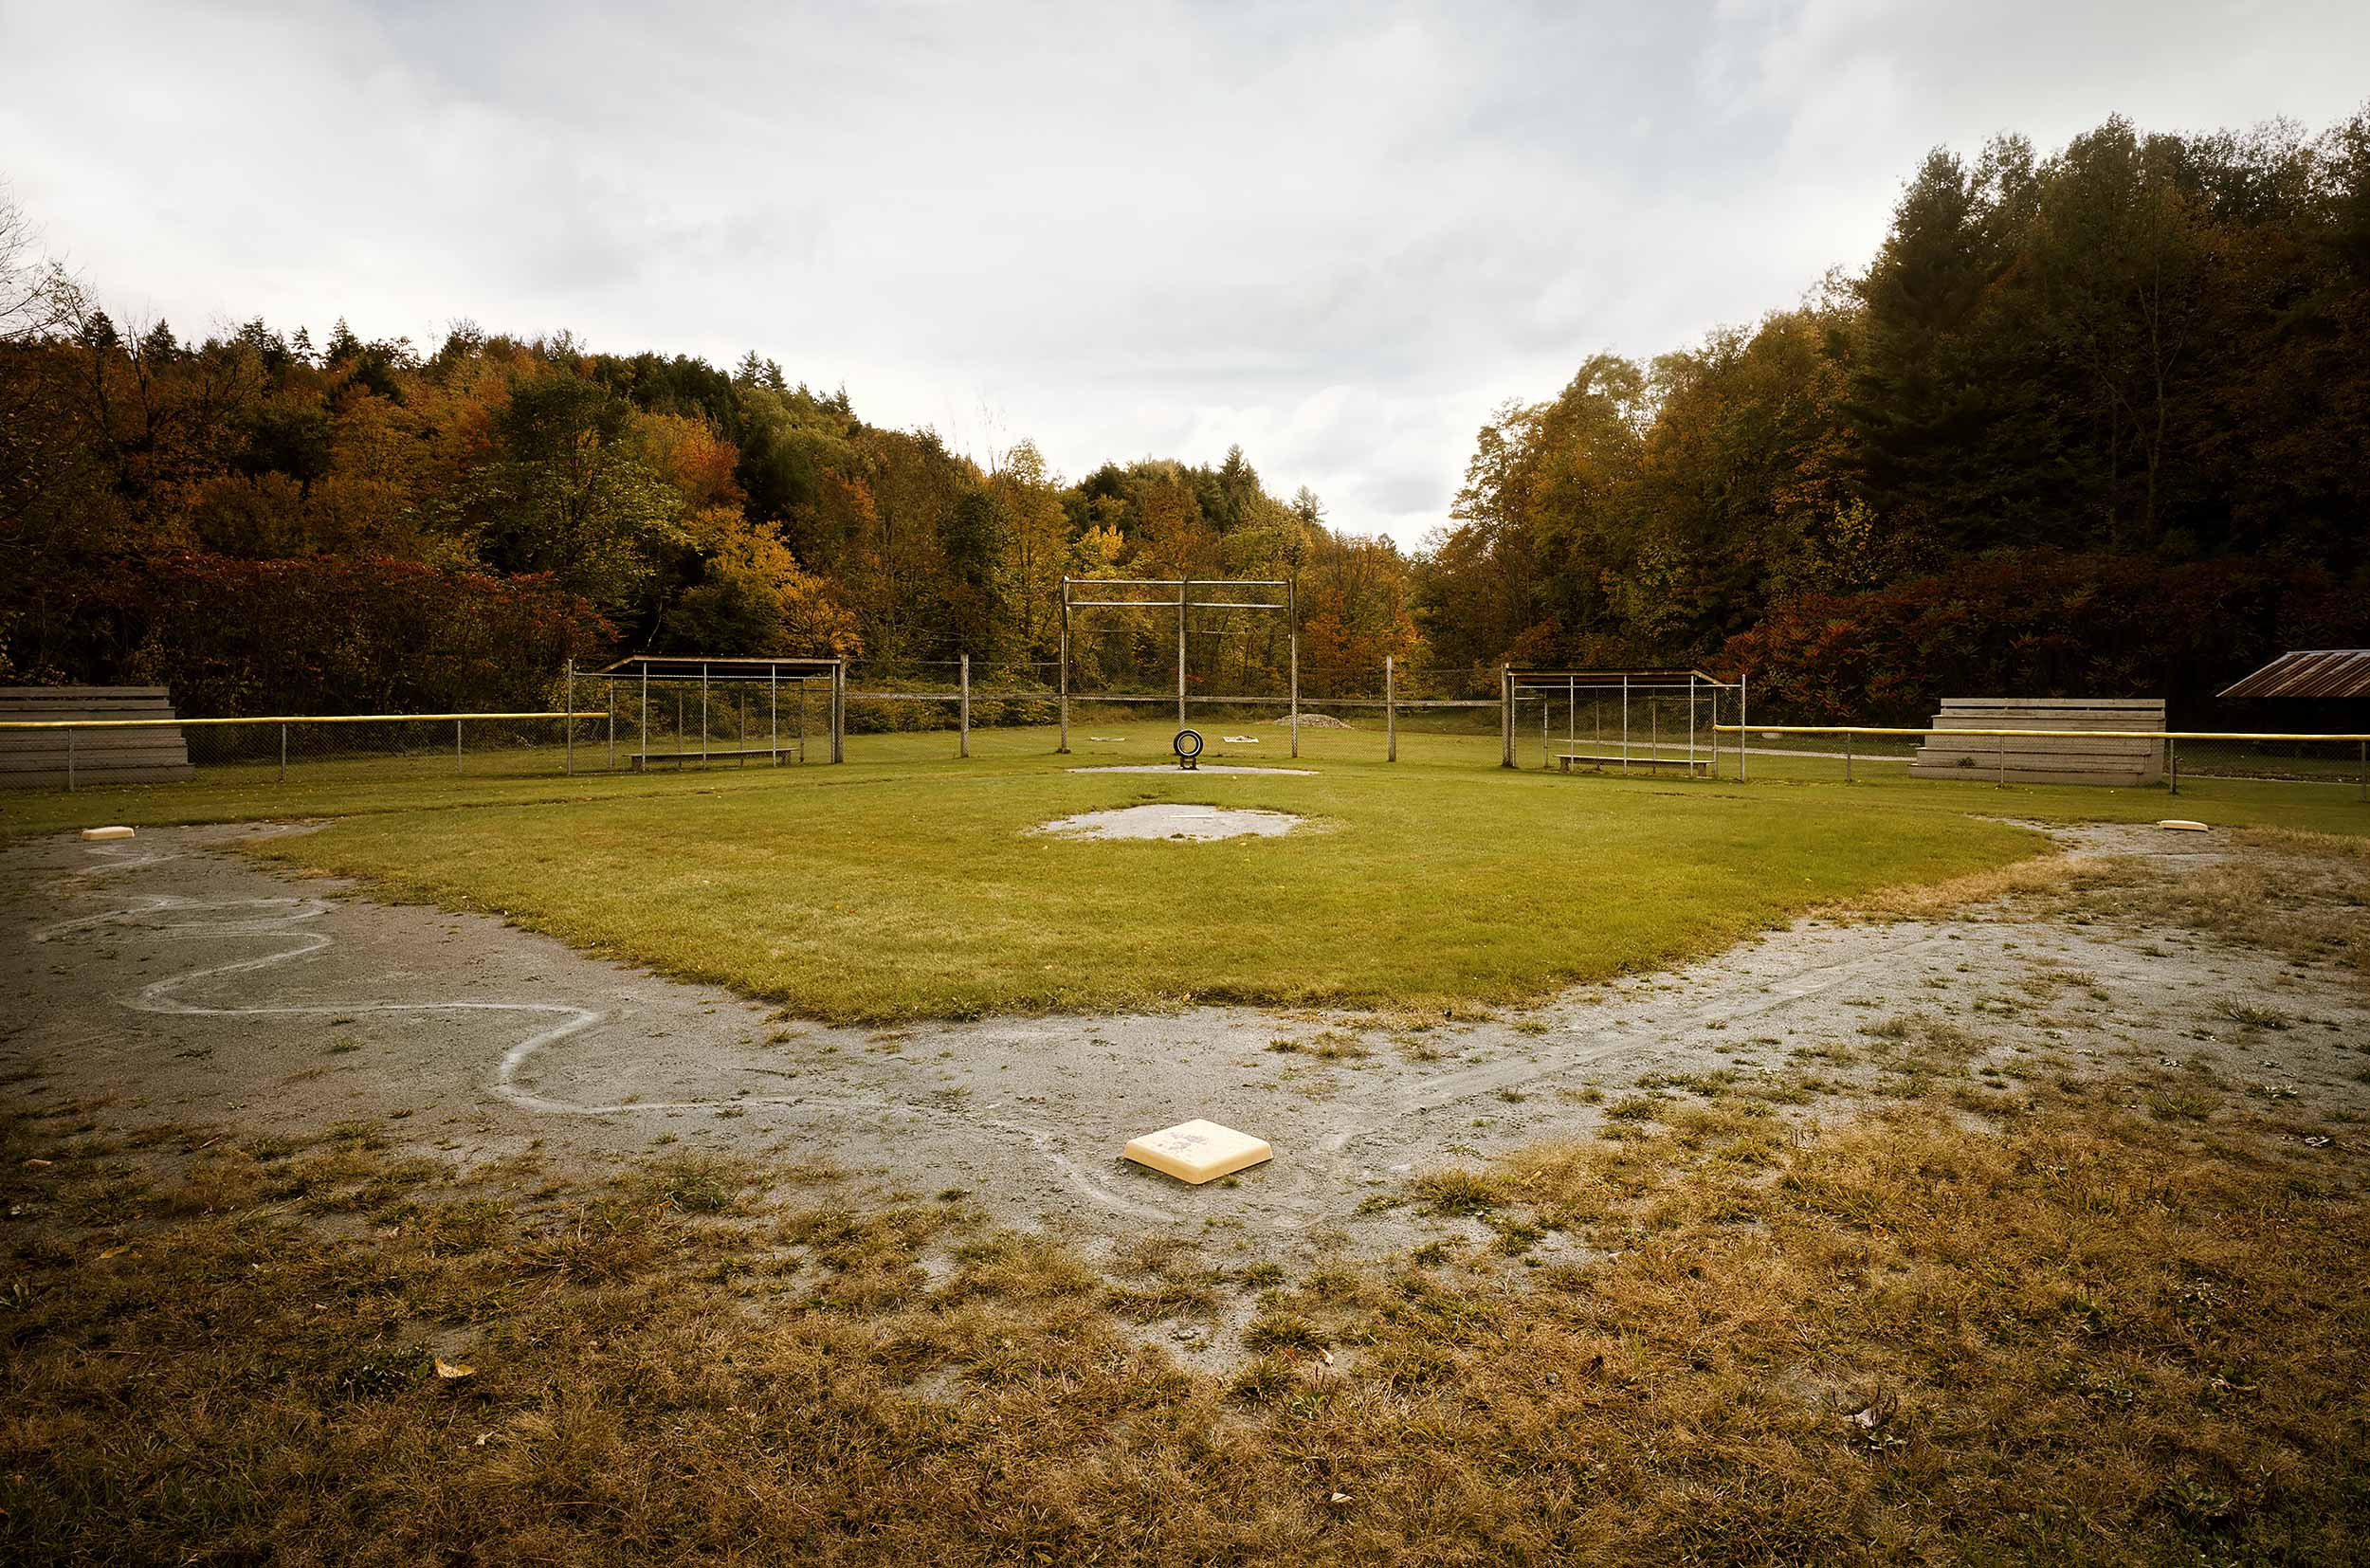 An empty baseball diamond in Vermont during the fall